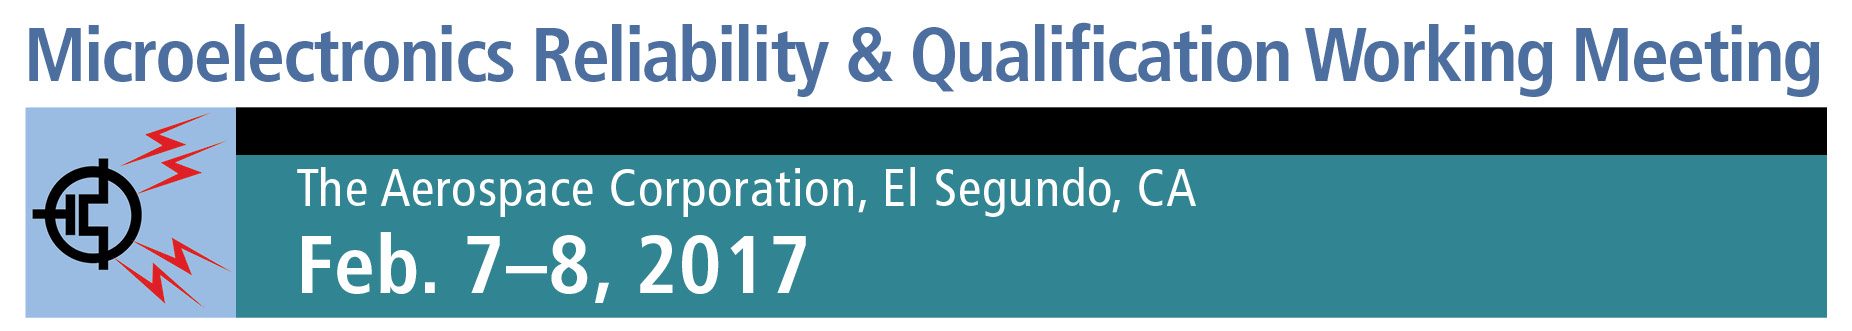 2017 Microelectronics Reliability & Qualification Working Meeting (MRQW)